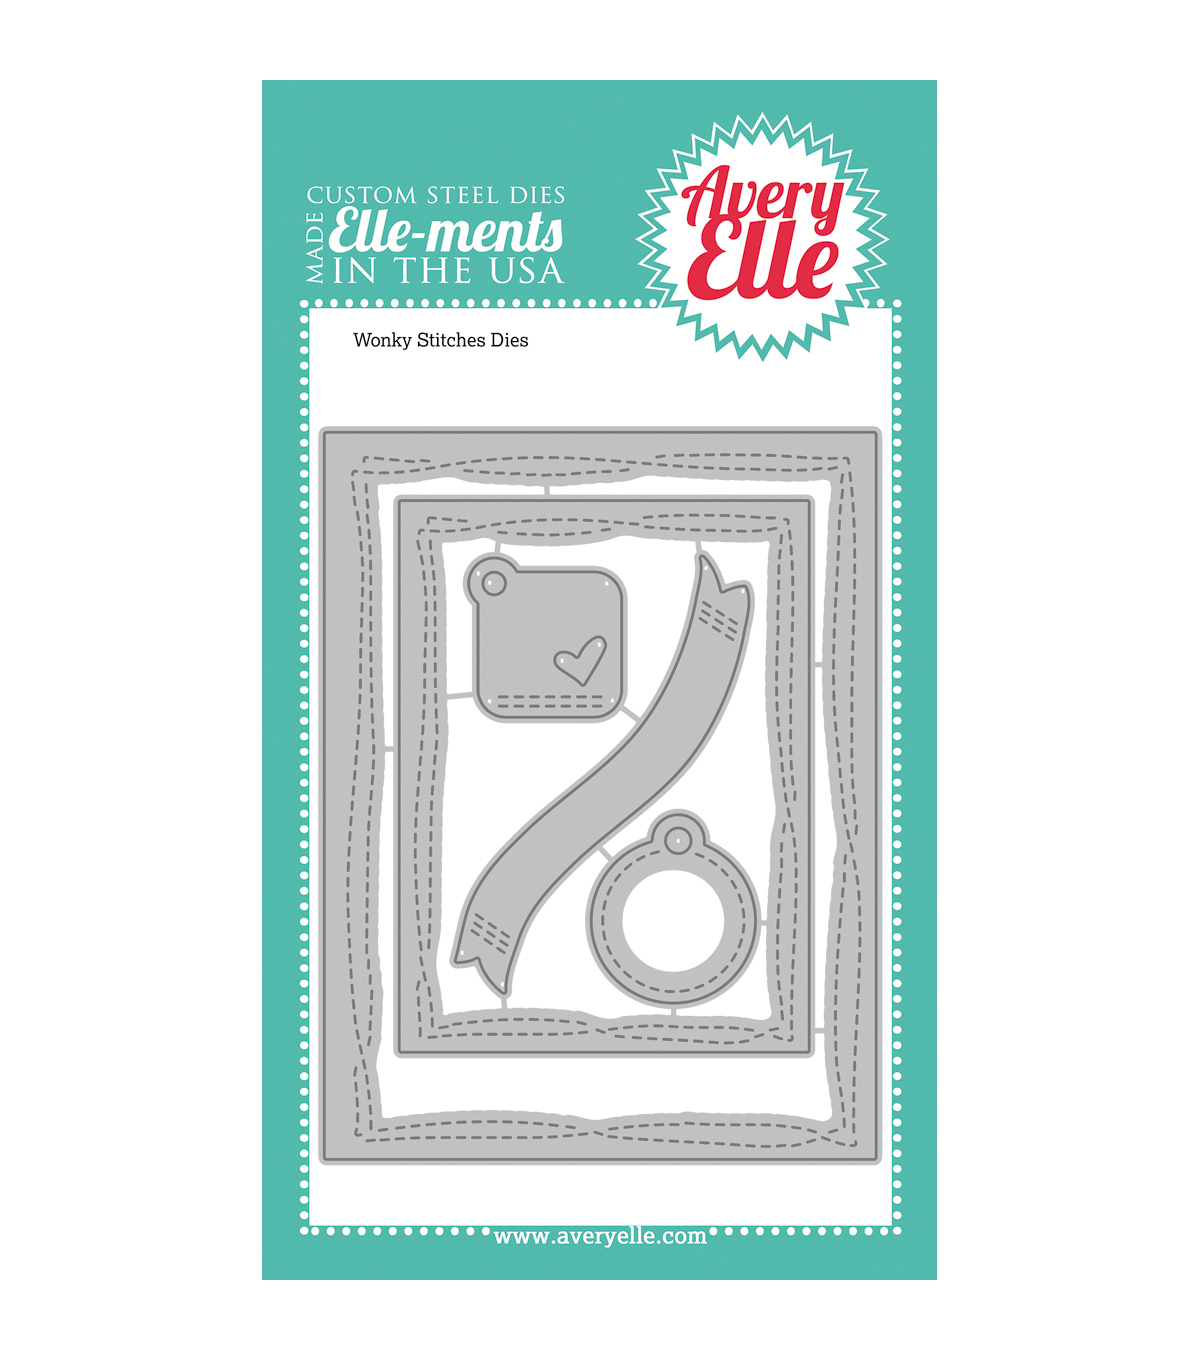 Avery Elle Elle-Ments Dies-Wonky Stitches